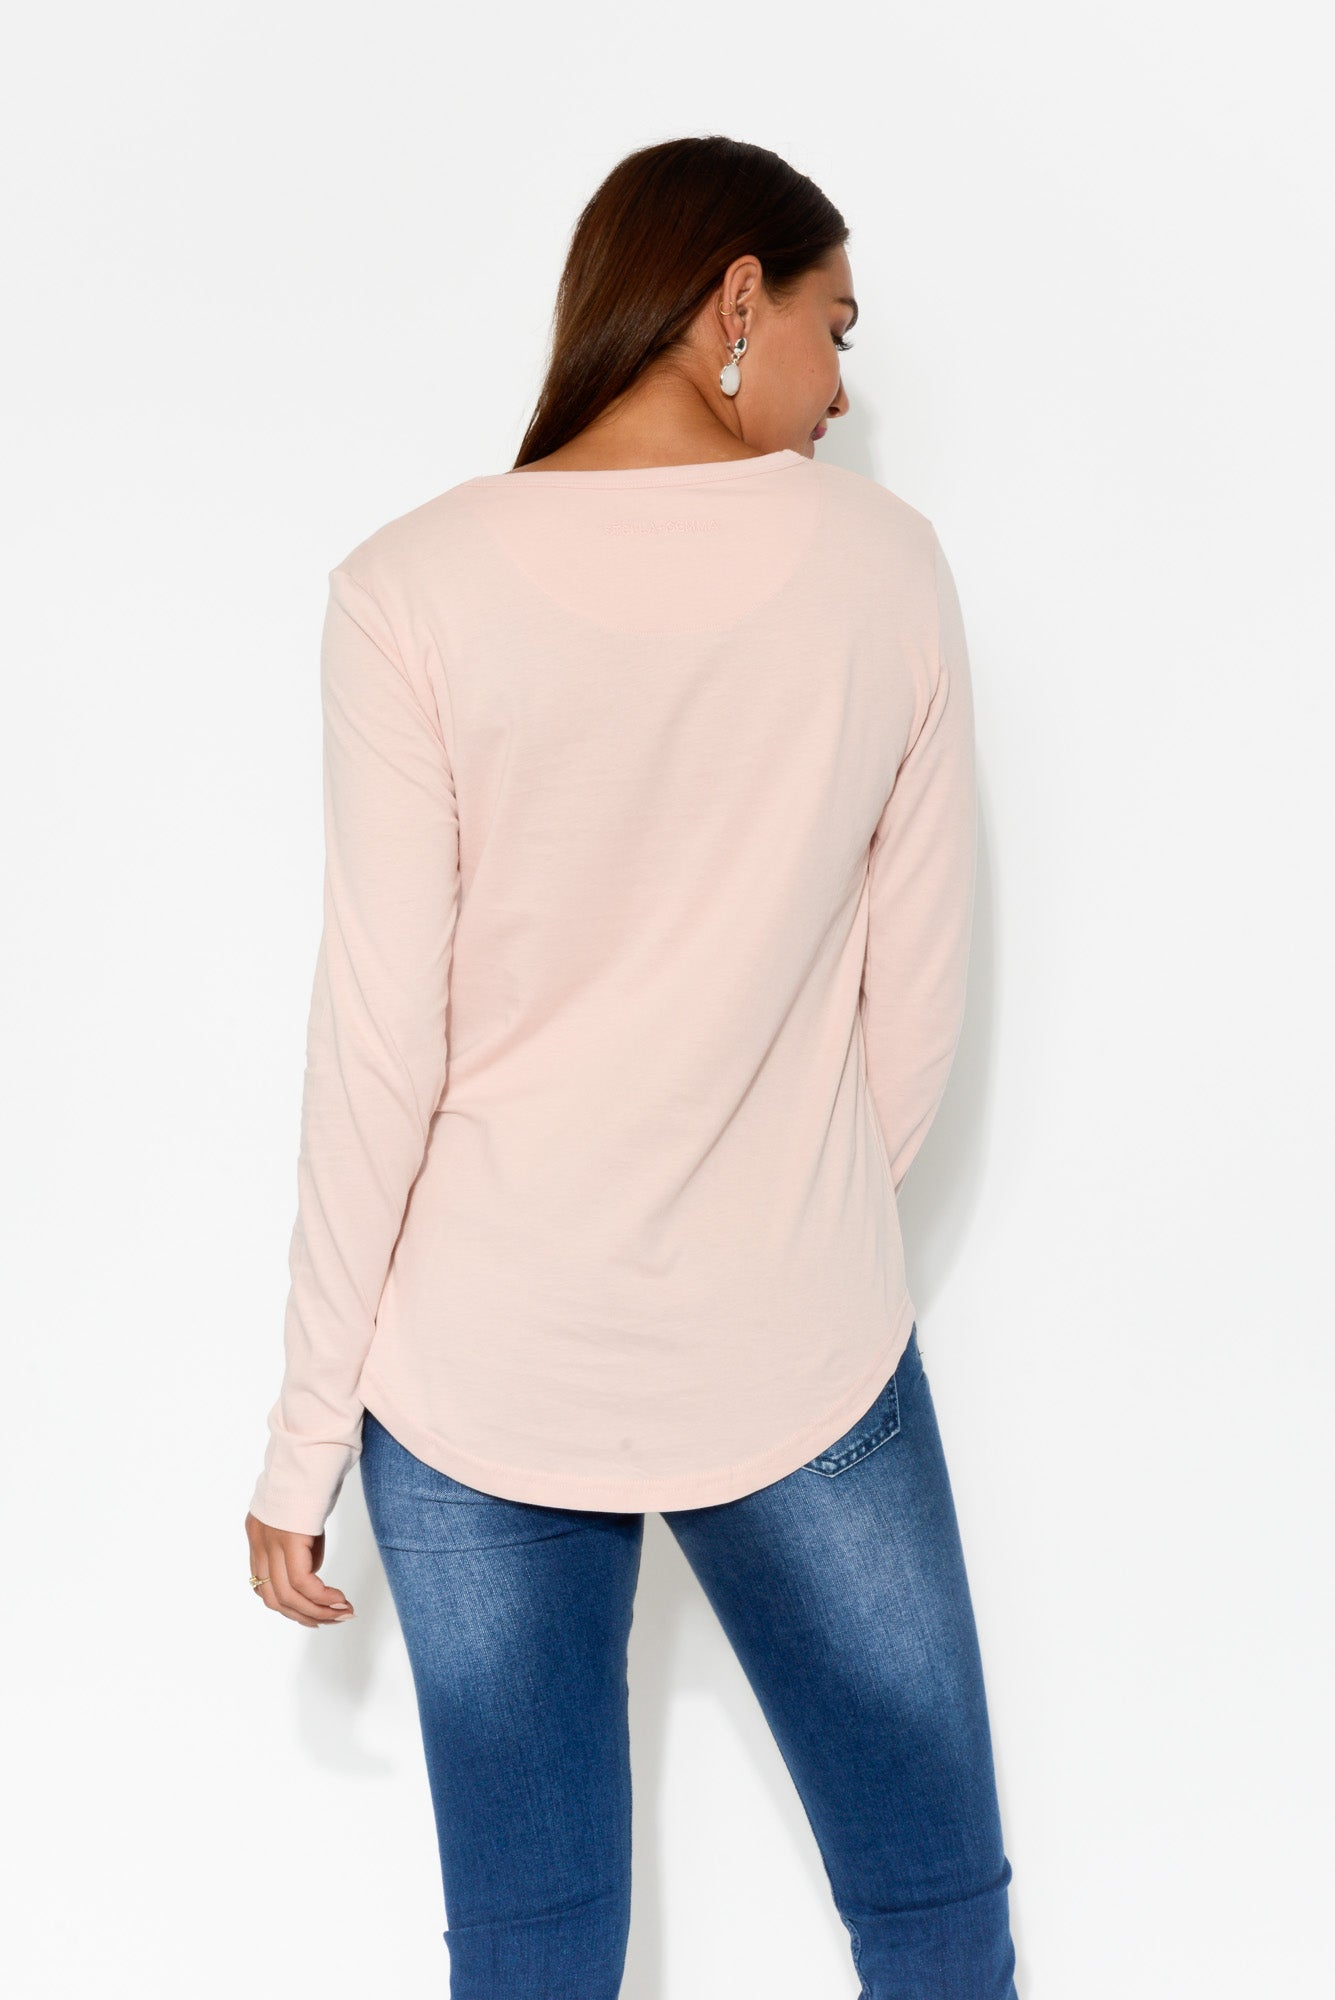 Pink Lovely Cotton Sleeved Tee - Blue Bungalow